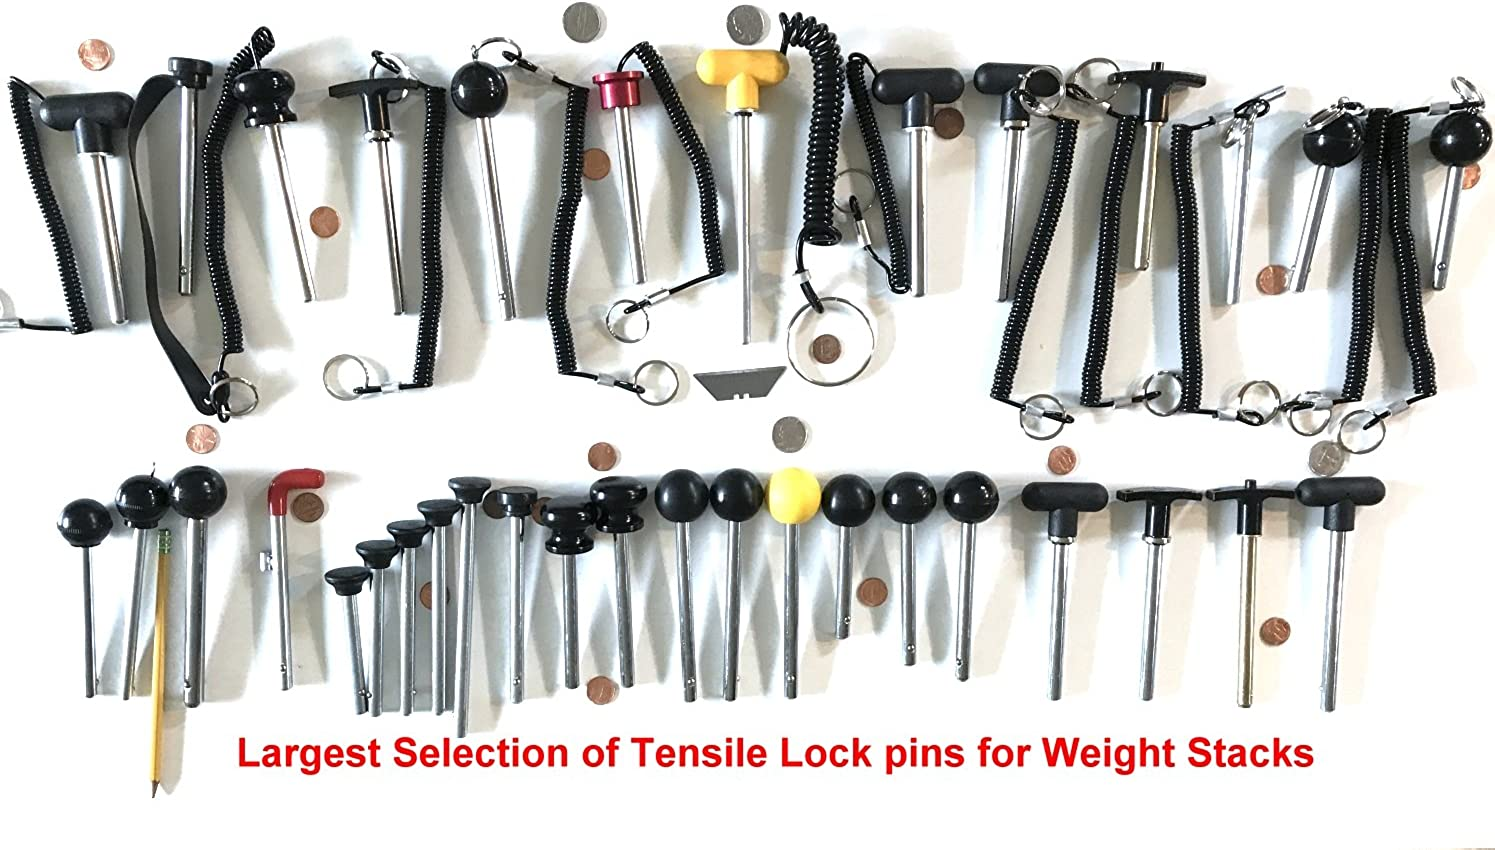 Chrome Pl Universal Weight Stack Replacement SELECTOR KEY Tensile DETENT Hitch PINS 3//8 Diameter T Handle Hard Plastic round knob 4 1//4 Locking Space SBDs World Class Quick Release Pin